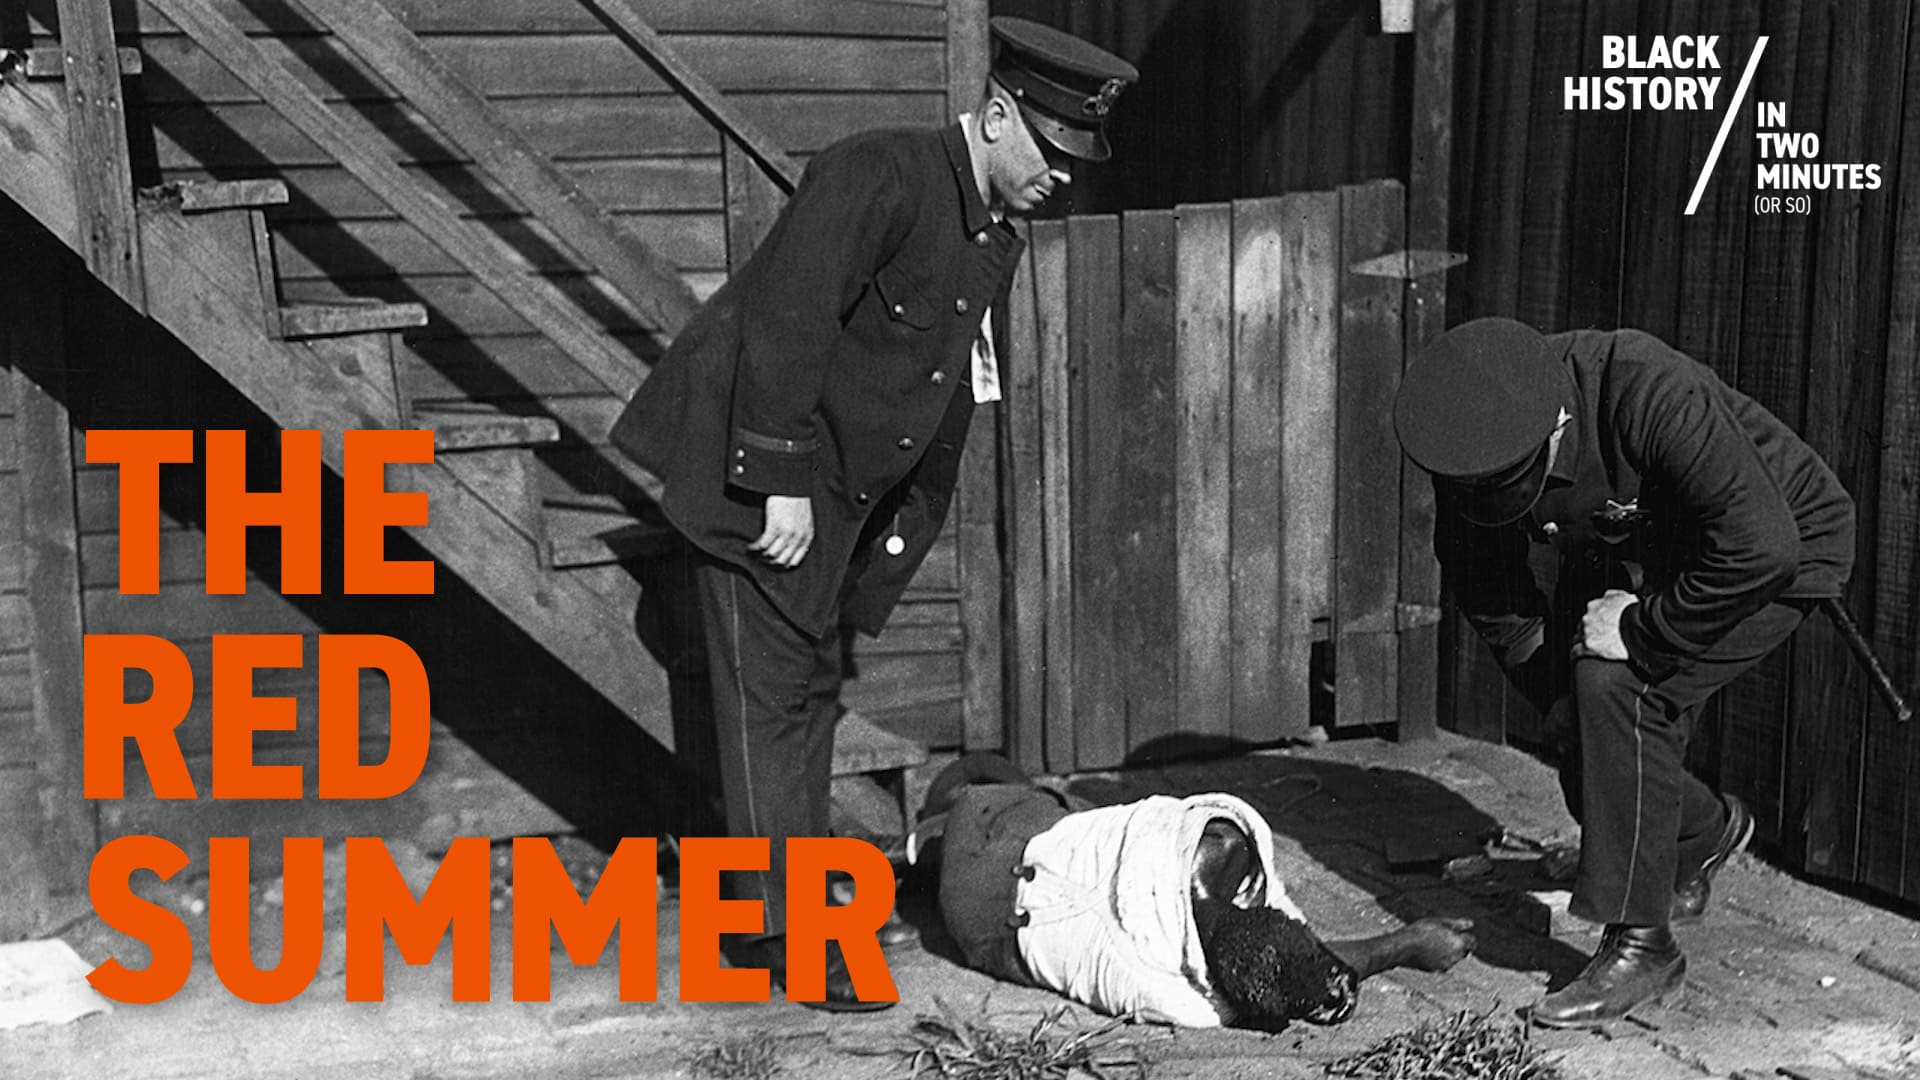 The Red Summer | Black History in Two Minutes (or so)